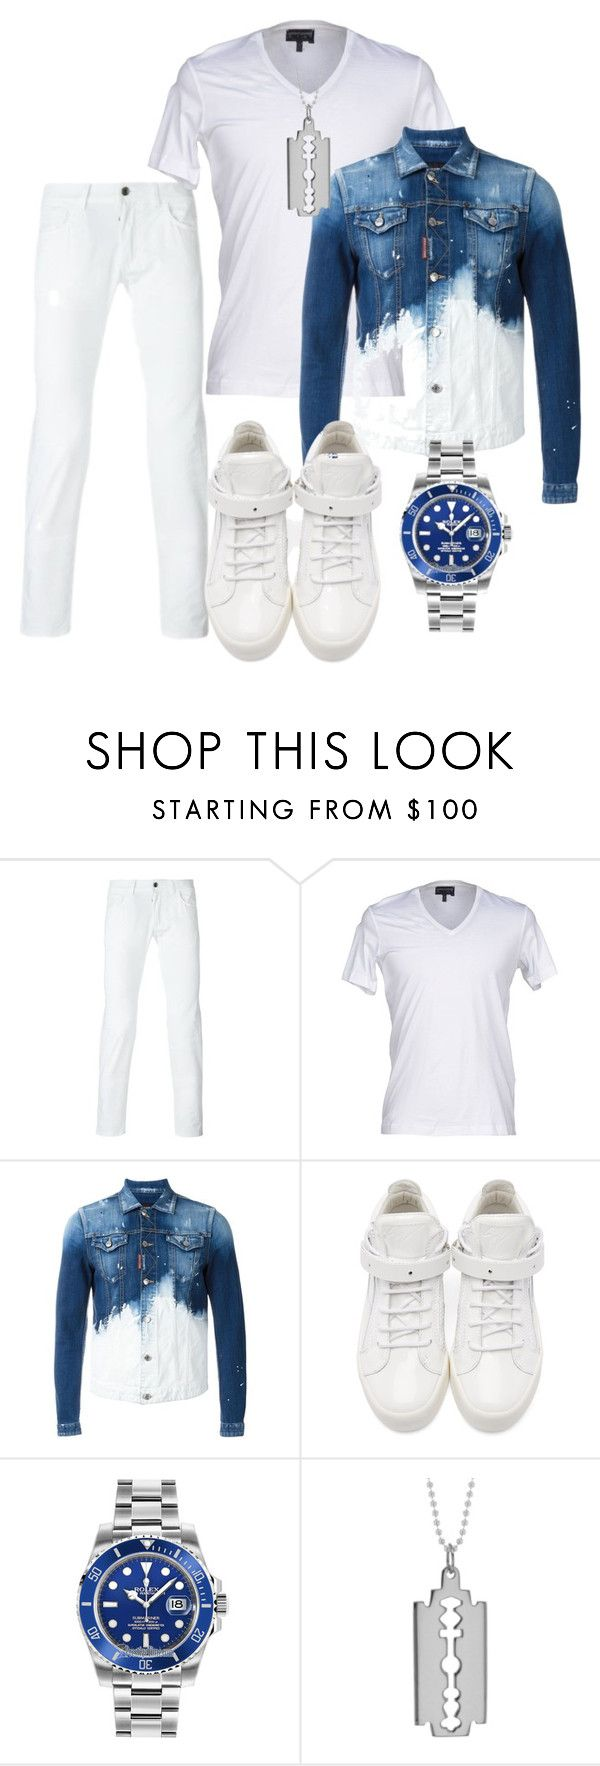 """Untitled #2905"" by styledbycharlieb ❤ liked on Polyvore featuring Emporio Armani, Dsquared2, Giuseppe Zanotti, Rolex and True Rocks"